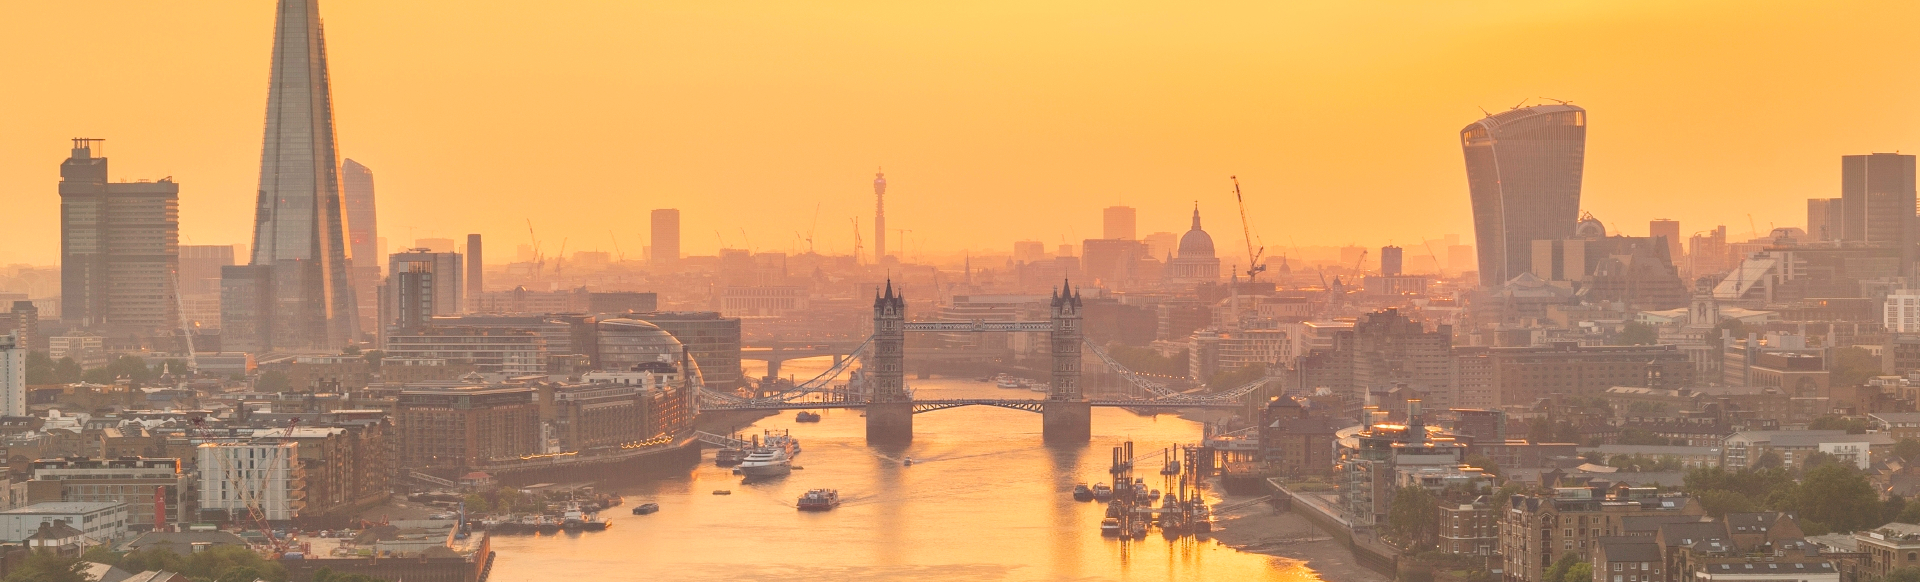 View of the London skyline, including the Shard and Tower bridge